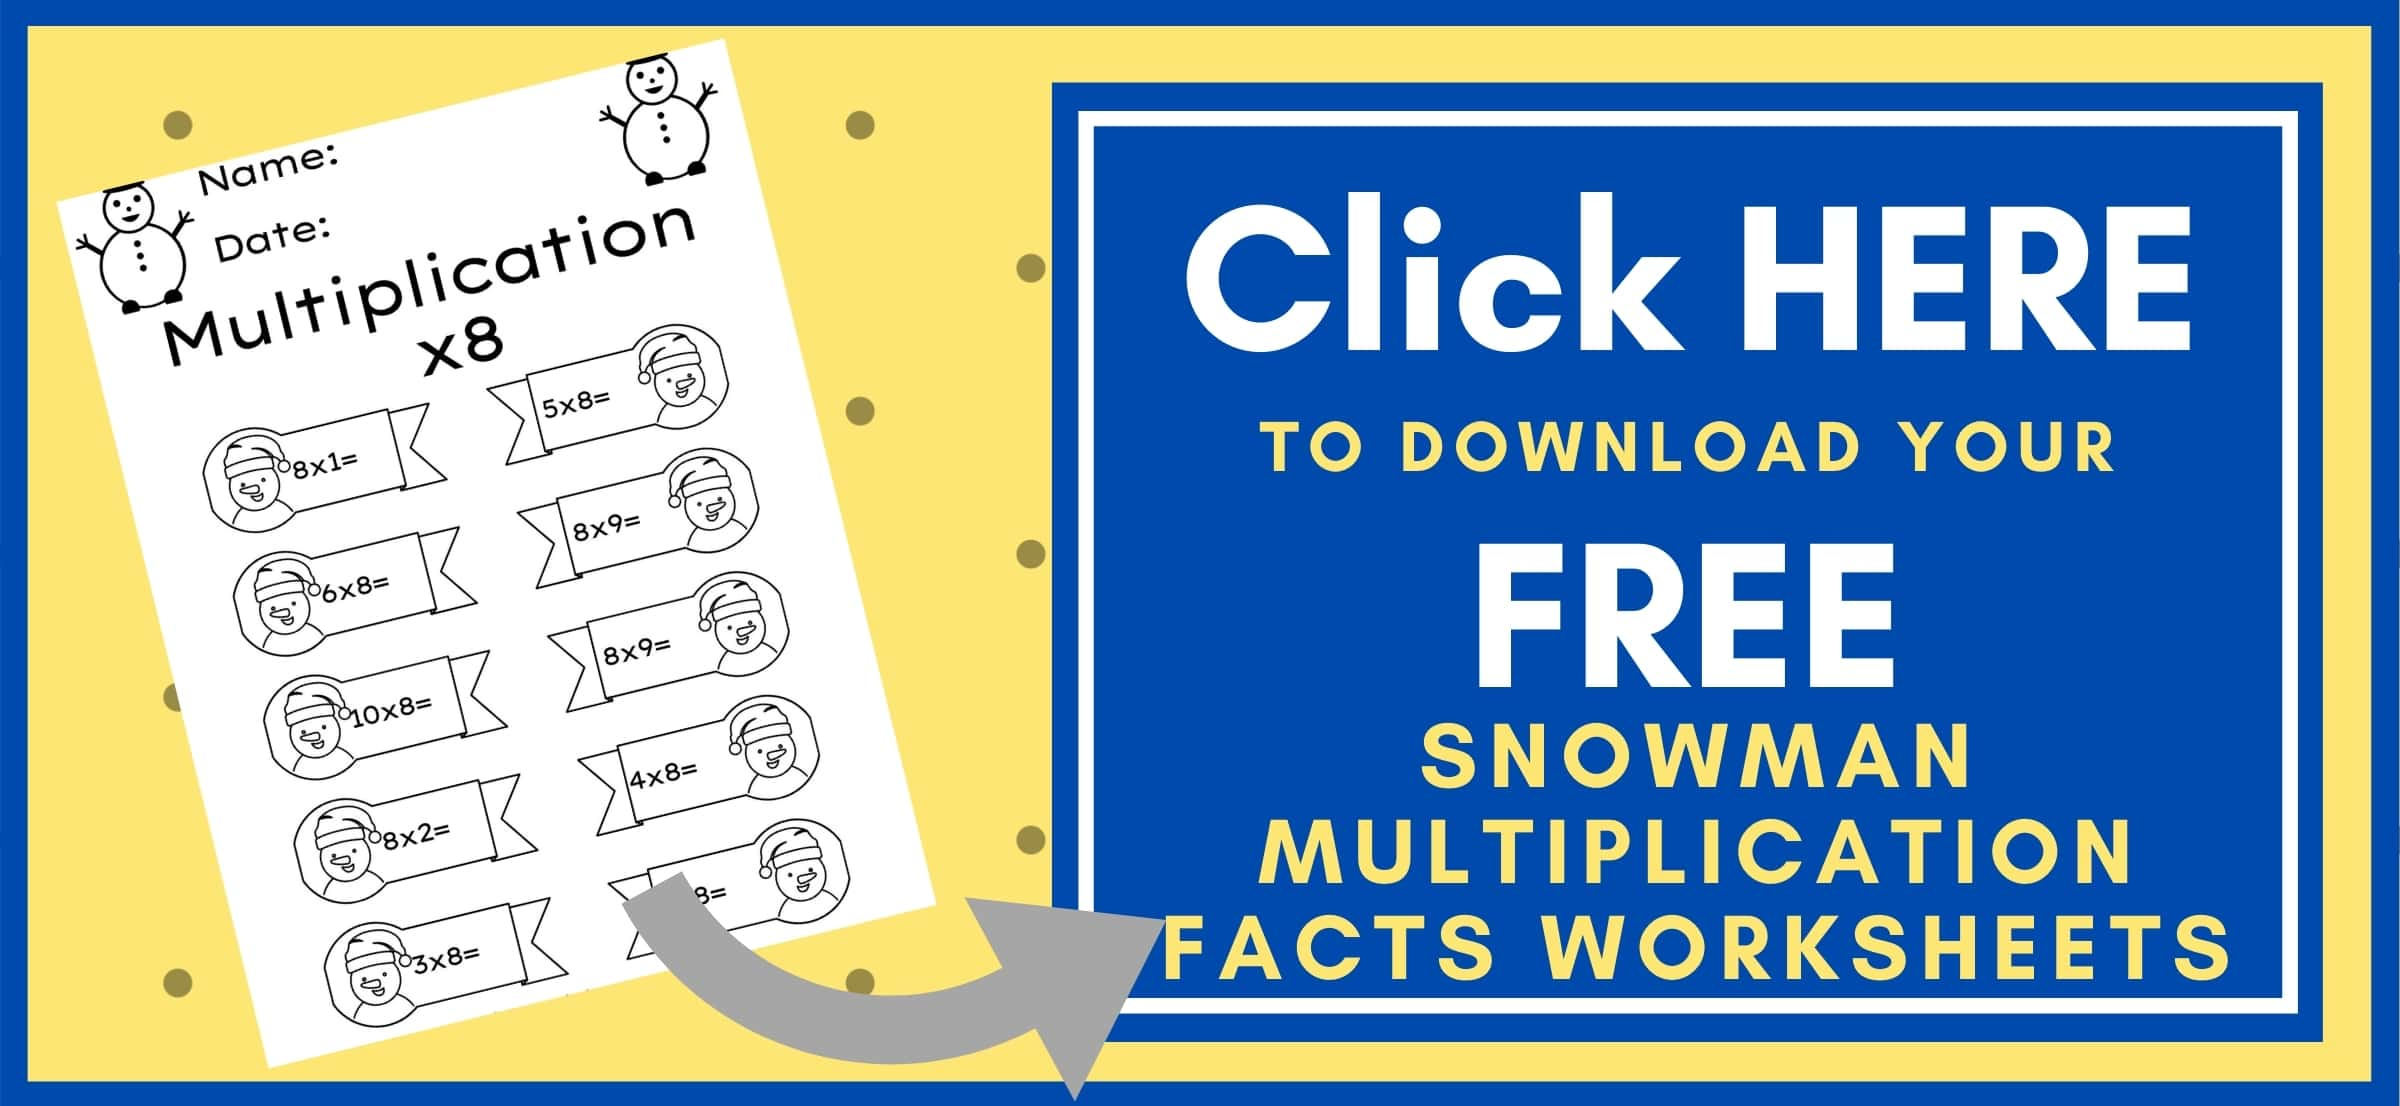 Snowman Multiplication Facts Worksheets Button to download